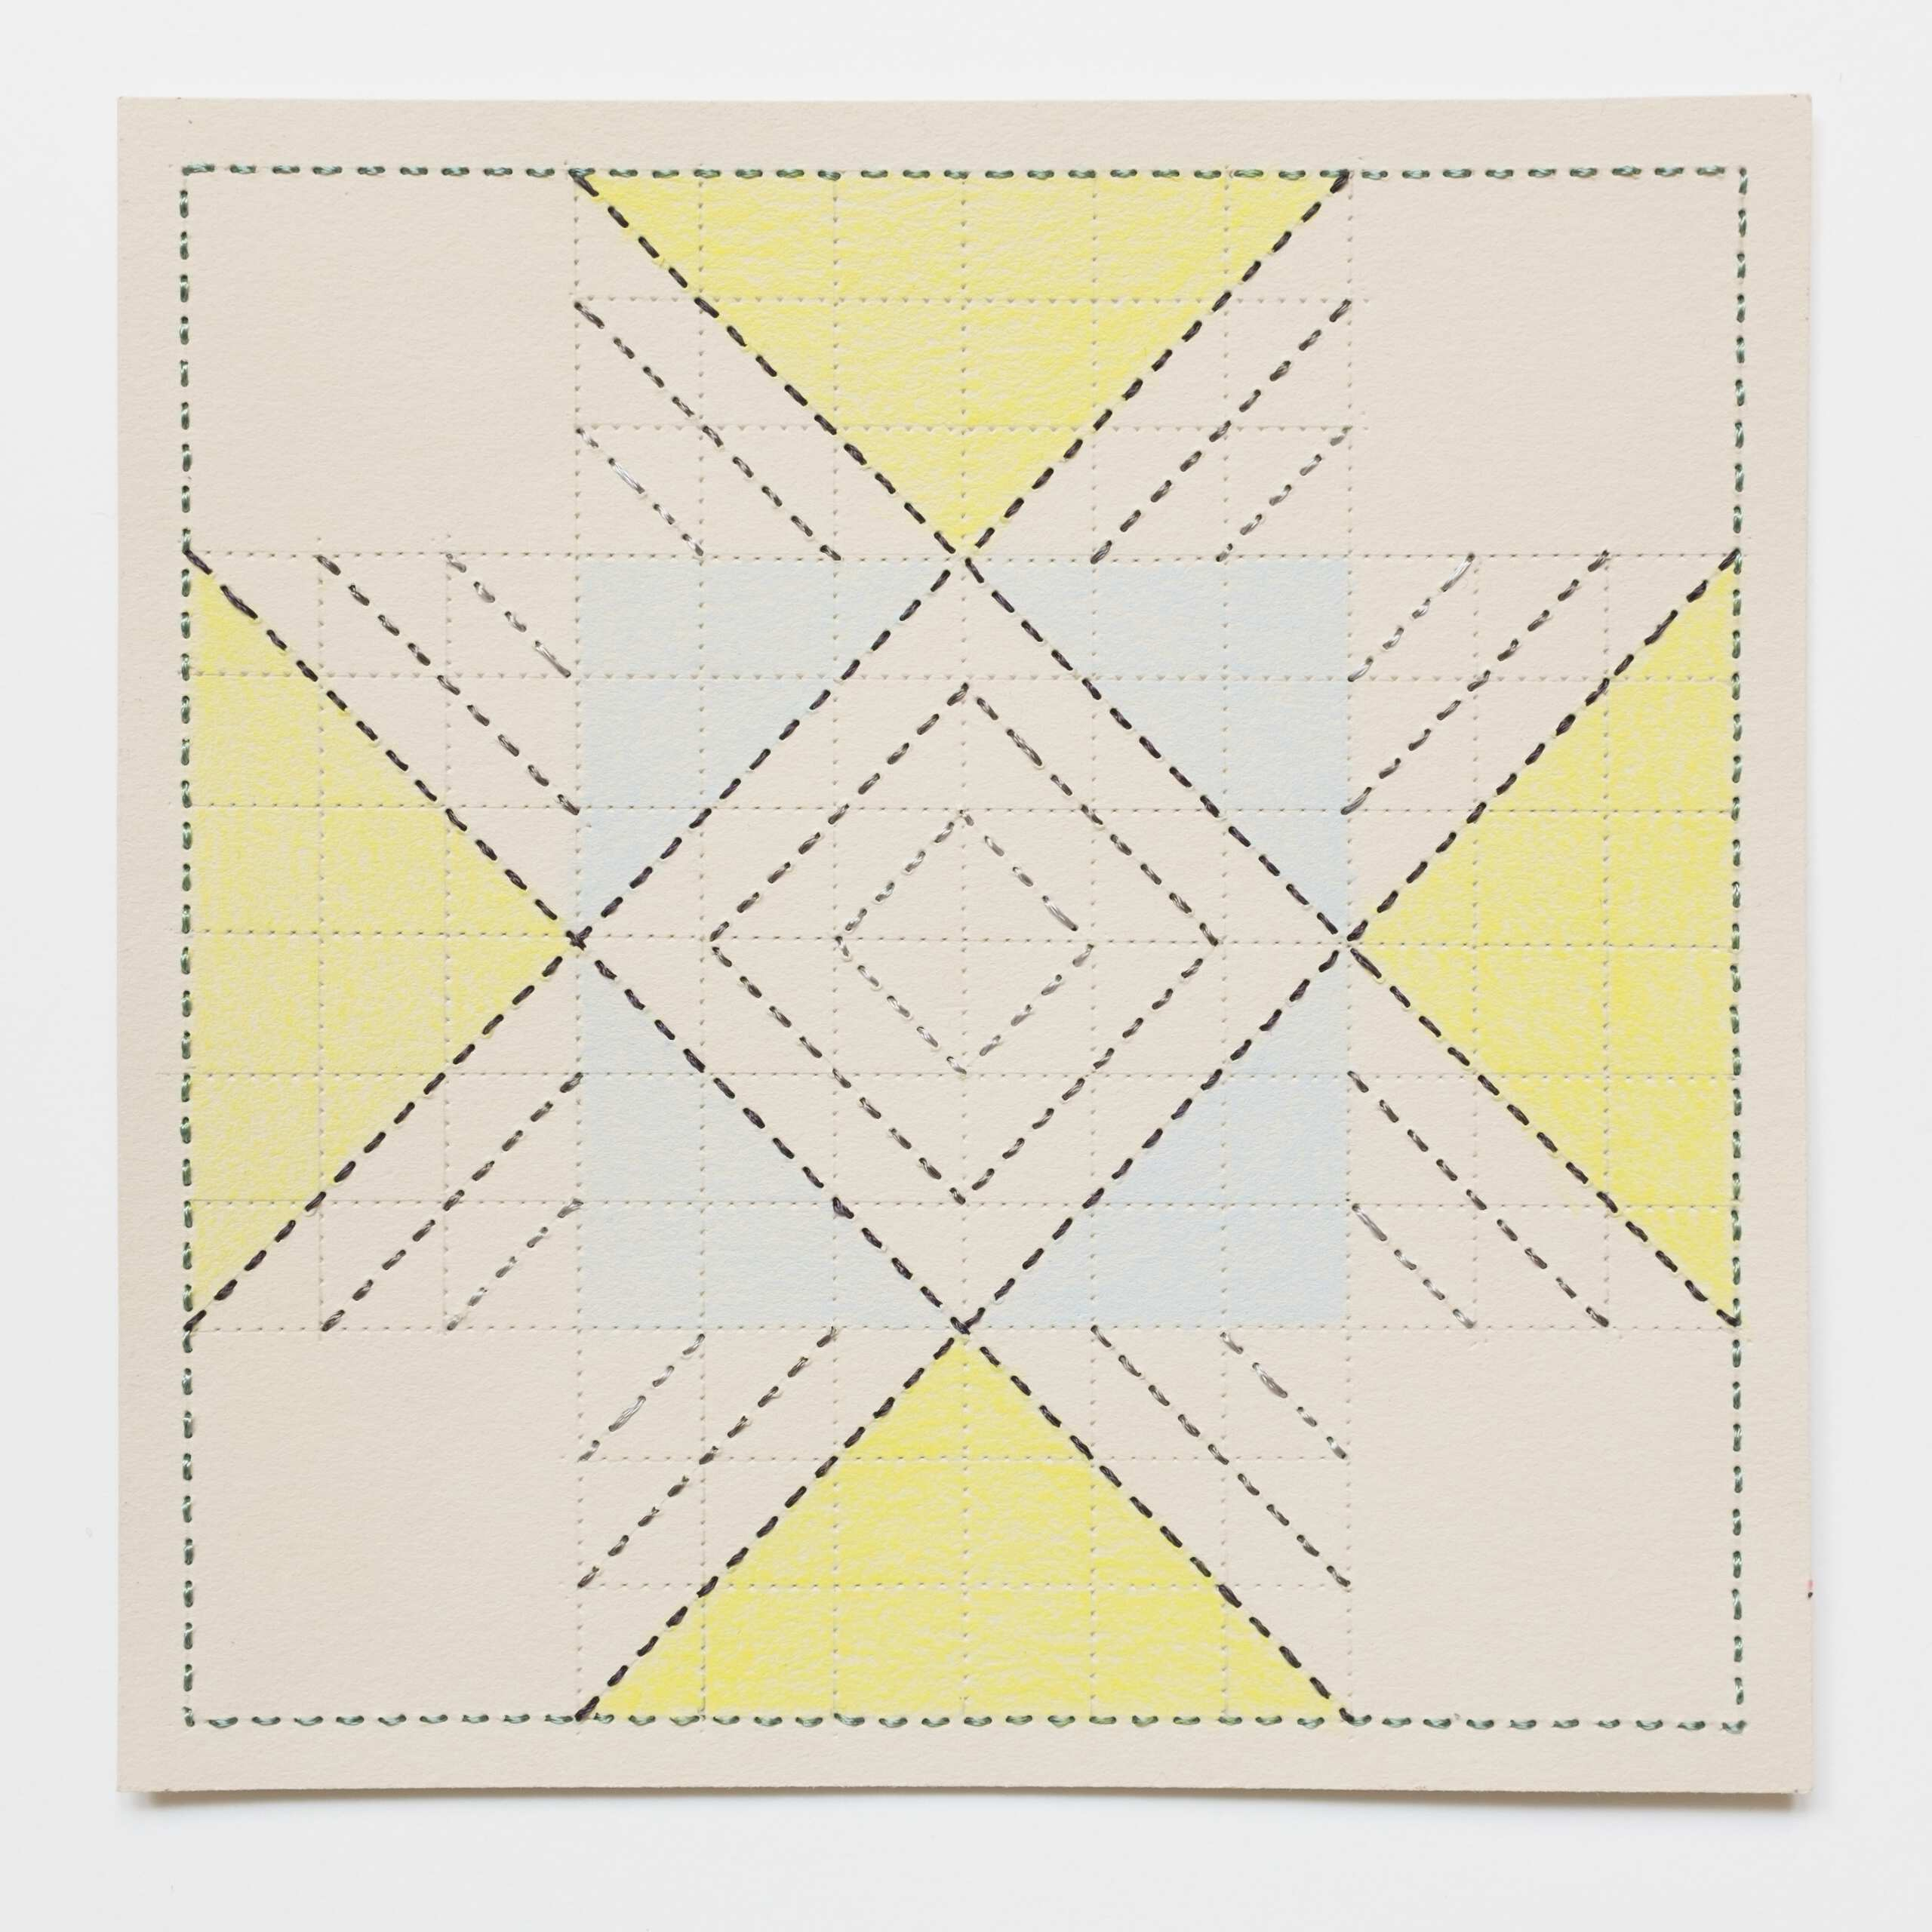 Quilted Composition [grey // squares], Hand-embroidered silk on paper, pencil, coloured pencil, 2019